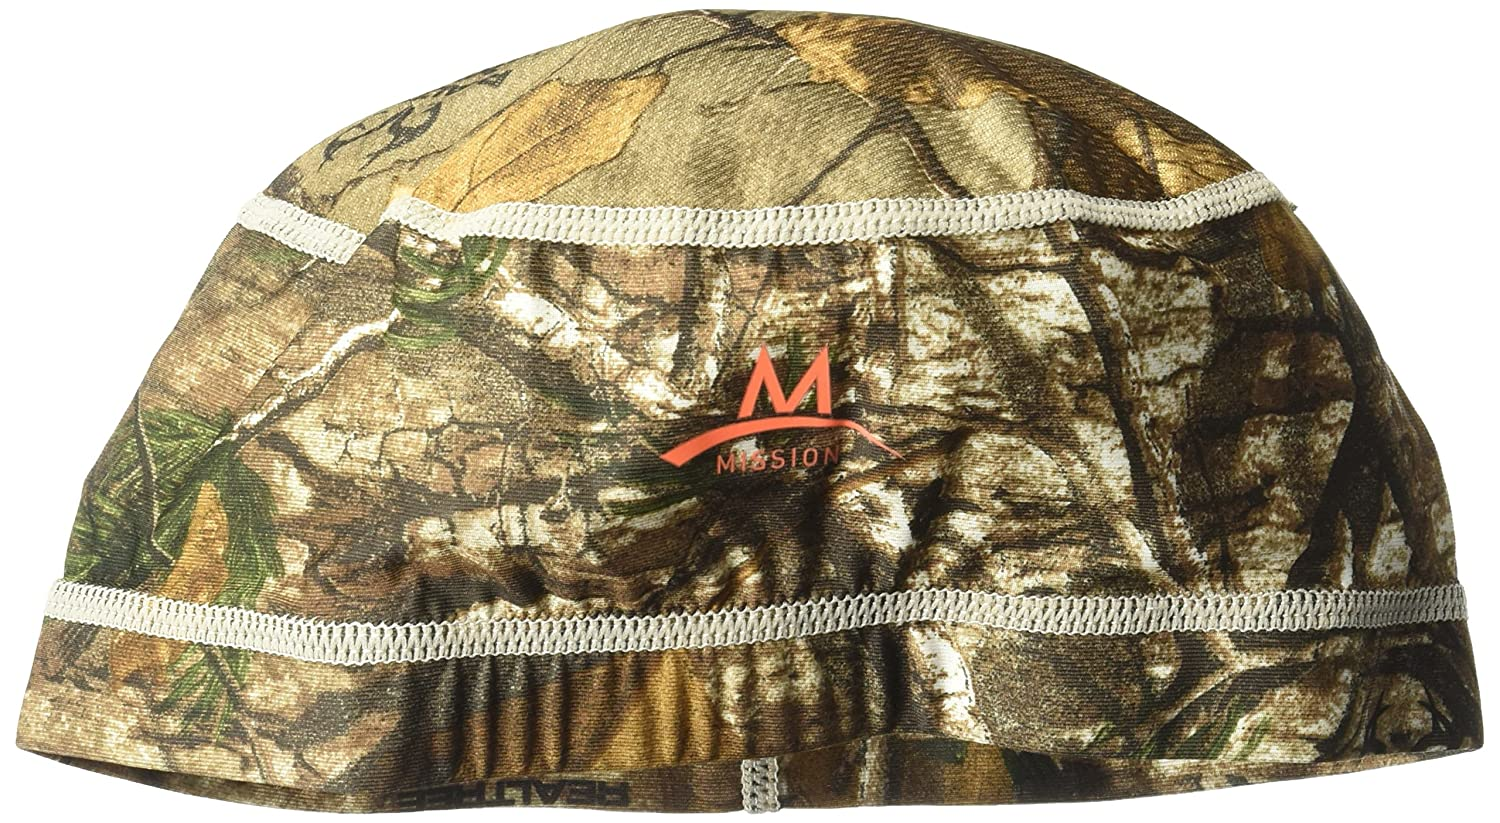 Mission Enduracool Cooling Helmet Liner, RealTree, One Size